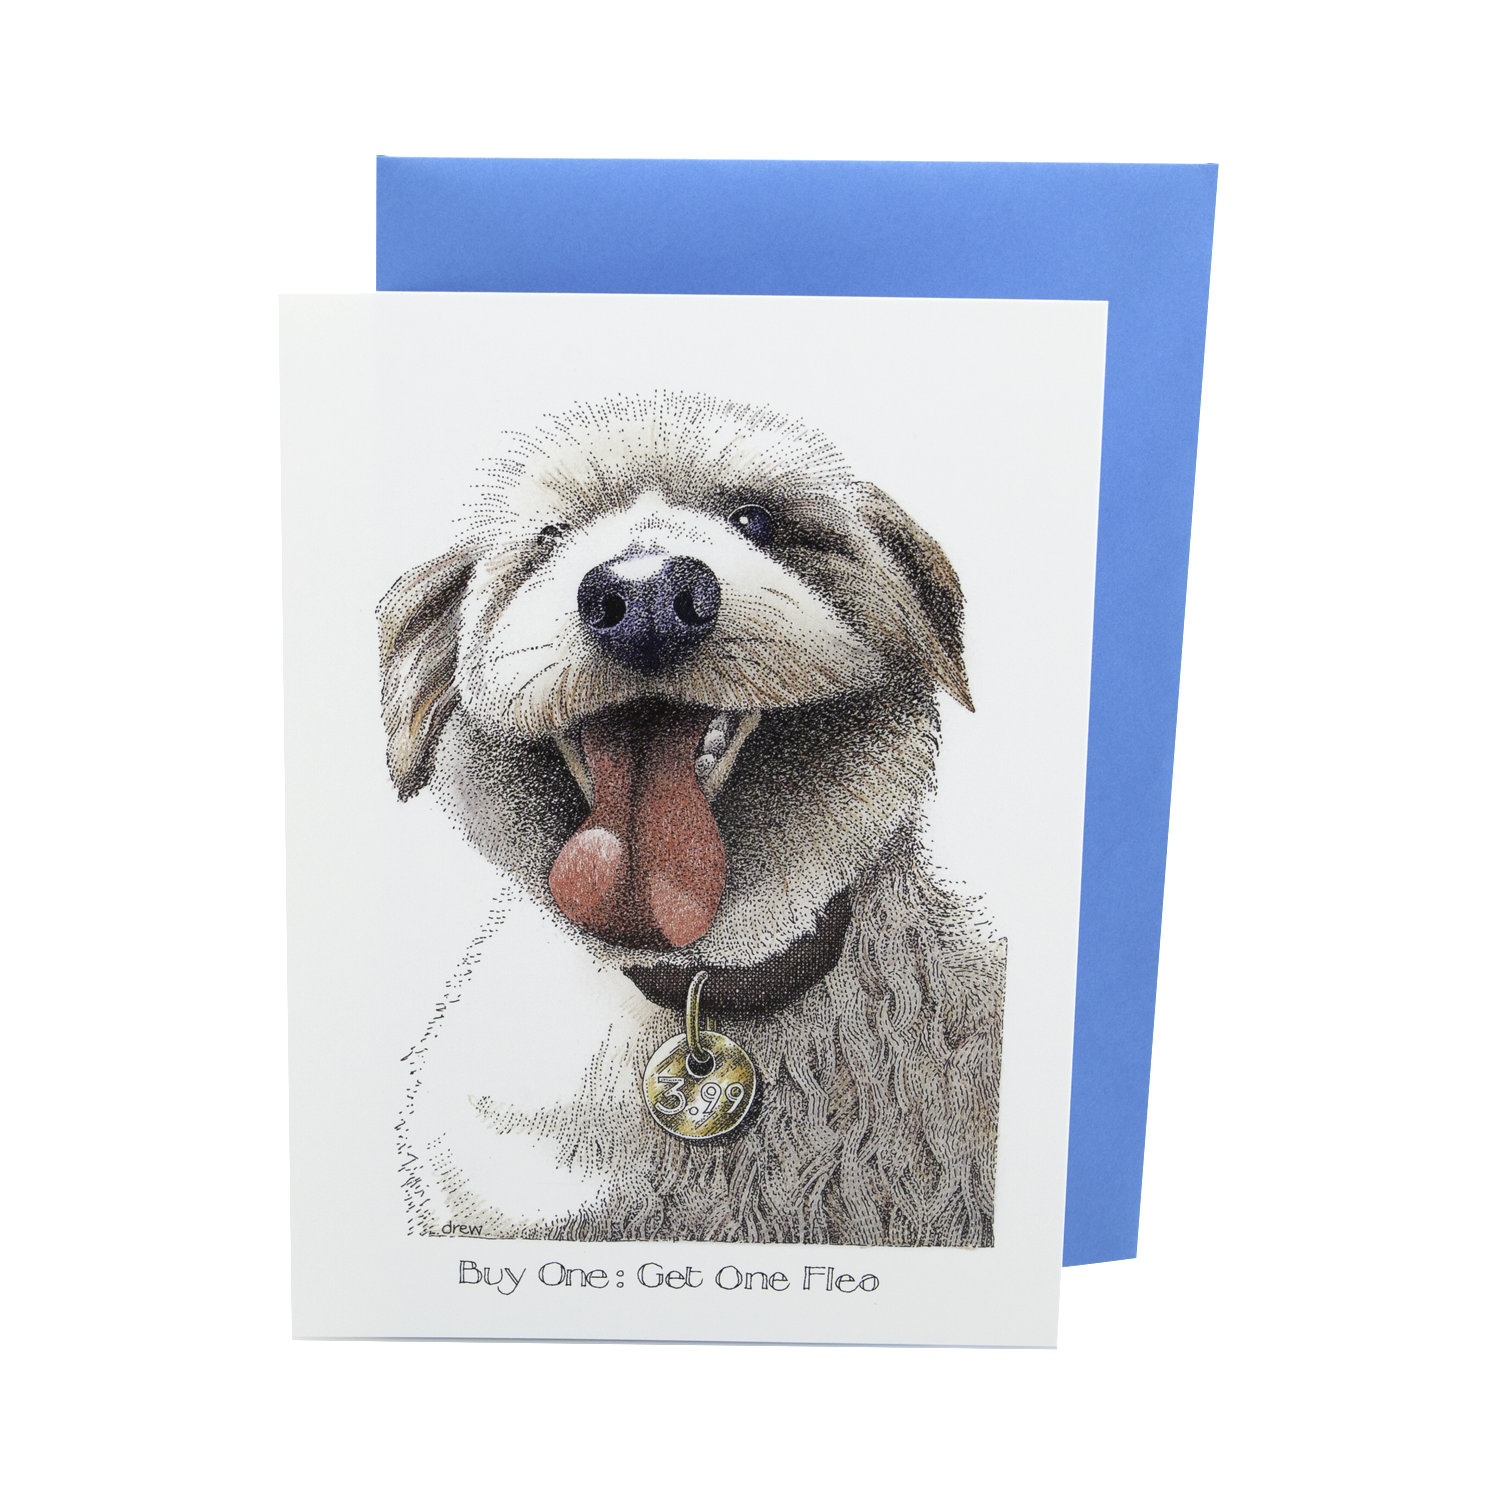 Dog Lover Cards, Gifts and merchandise available at Dog Krazy Gifts – Simon Drew Buy One Get One Flea, Humorous card featuring a Cockerpoo. Part ofthe Simon Drew Dog Collection available from Dog Krazy Gifts